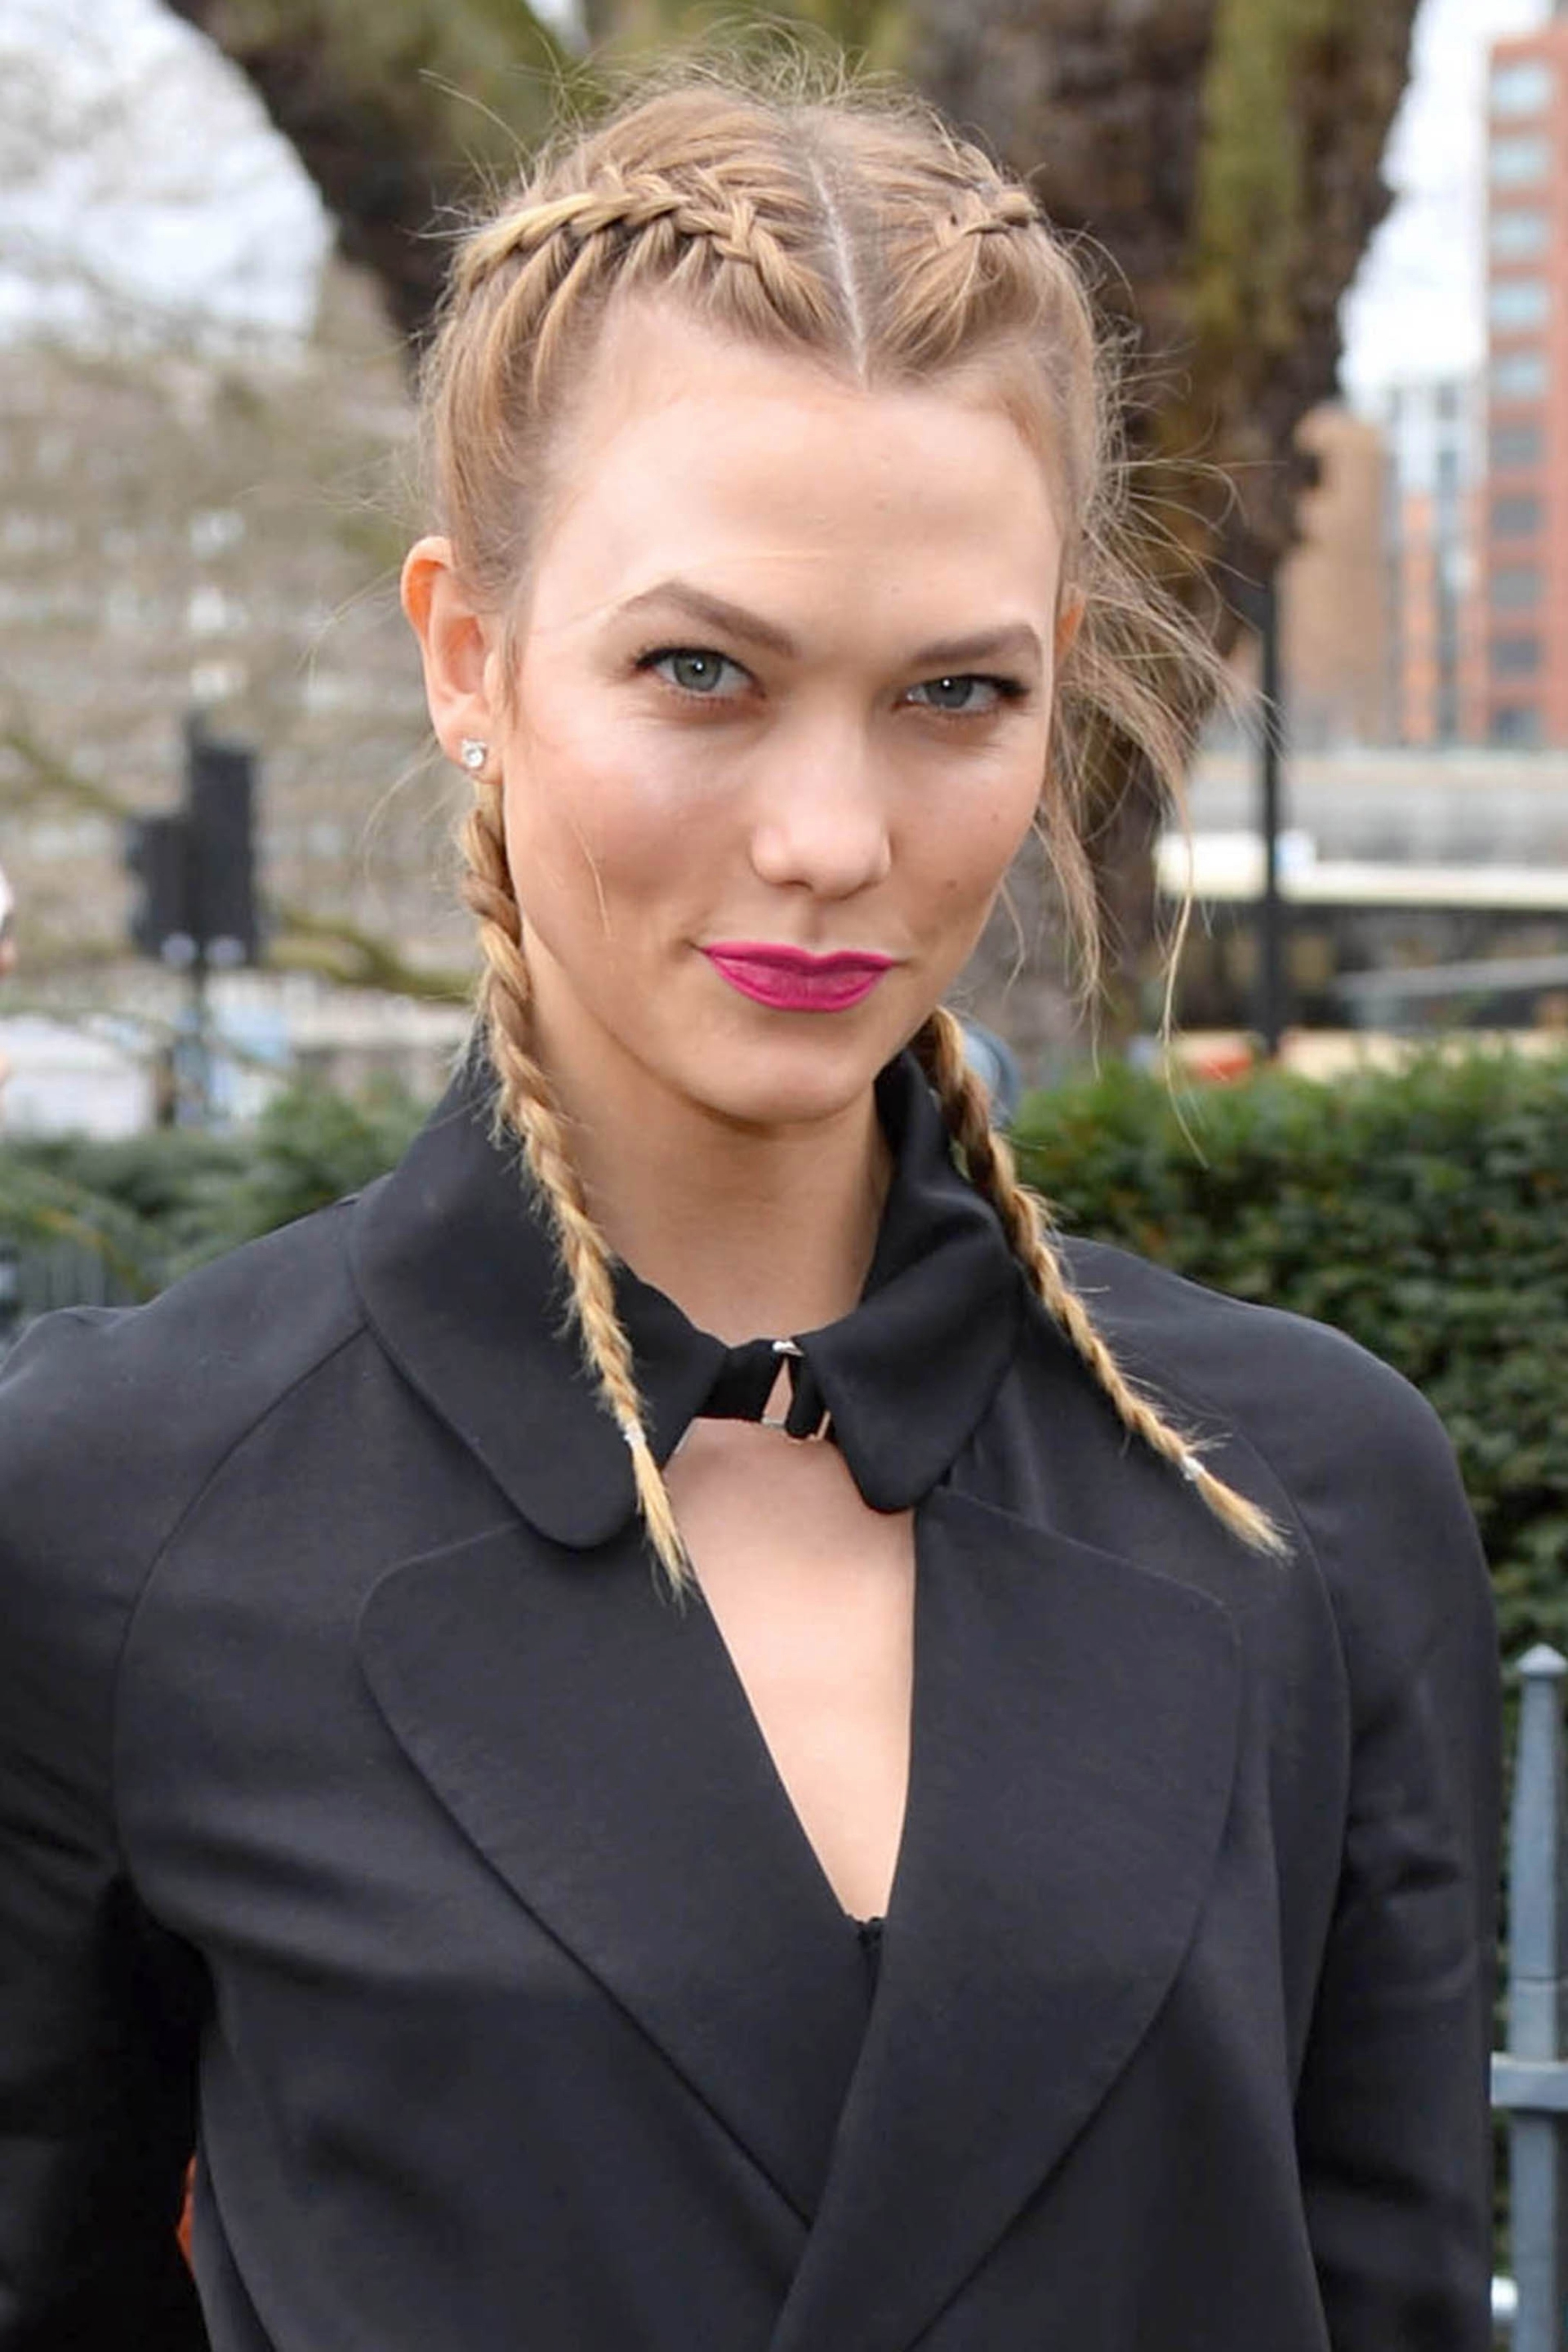 Design Trends Intended For Well Liked Braided Pigtails (View 11 of 15)